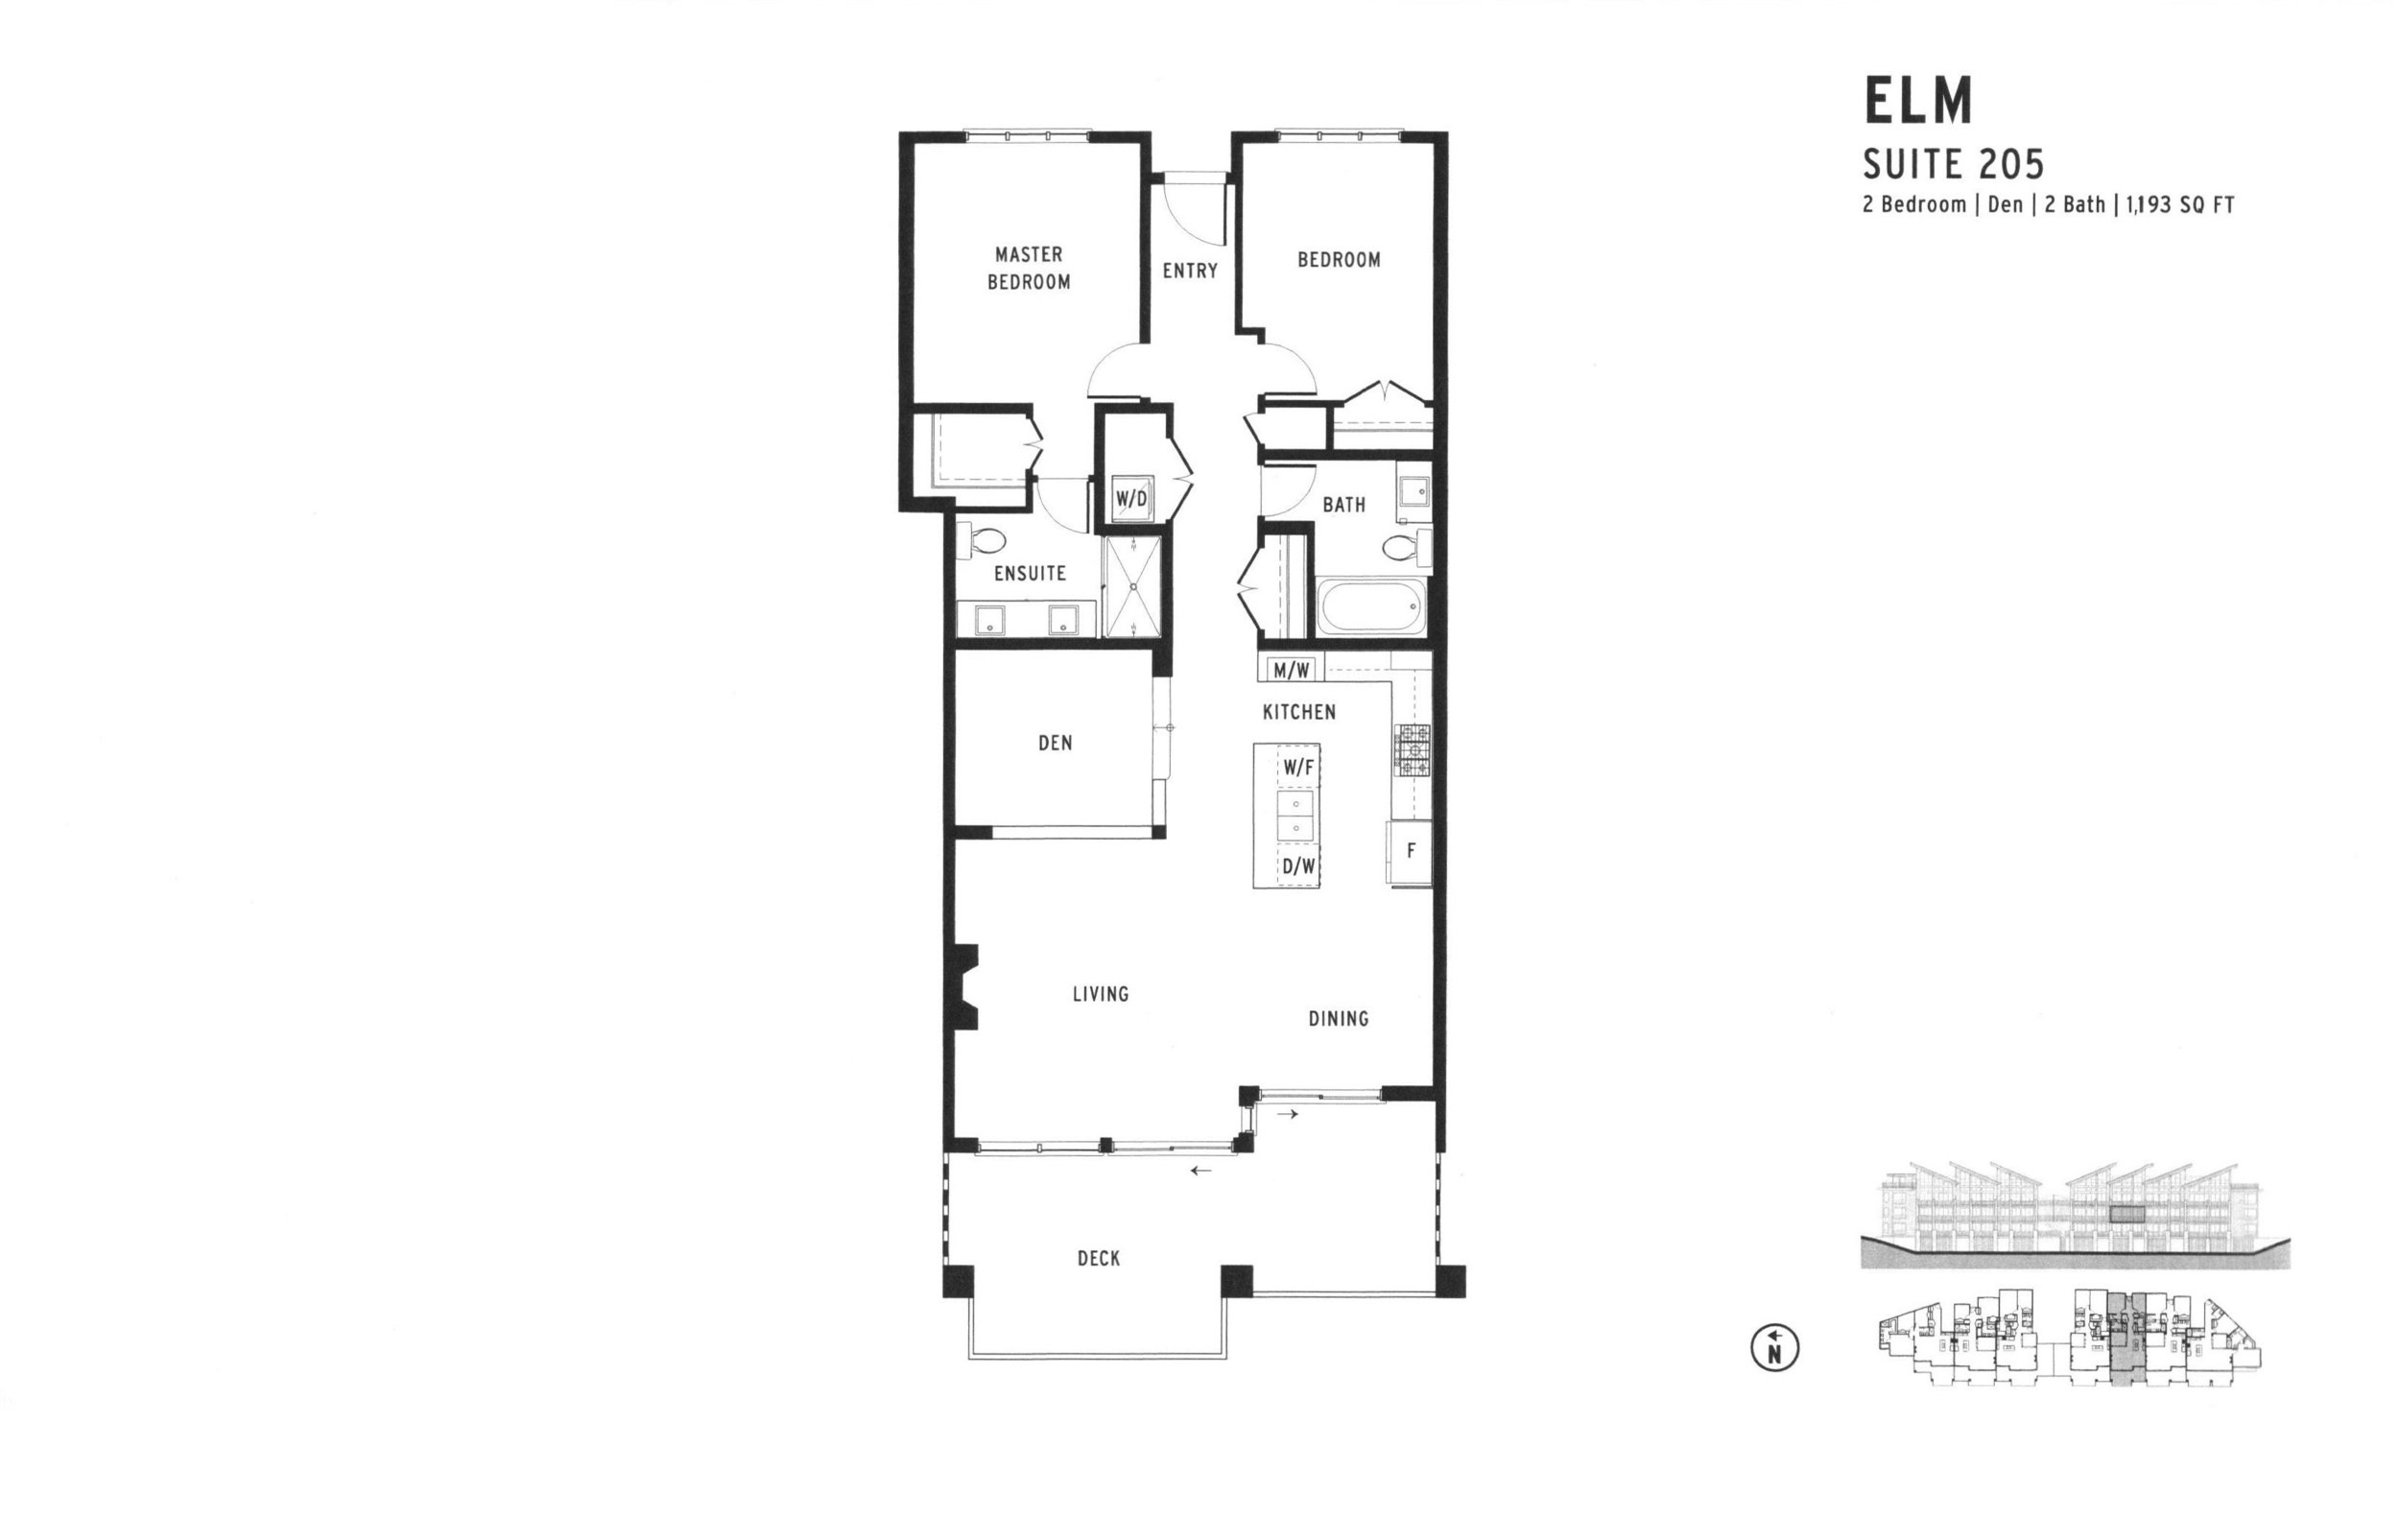 Copy of 205 - ELM - $ 1,189,900